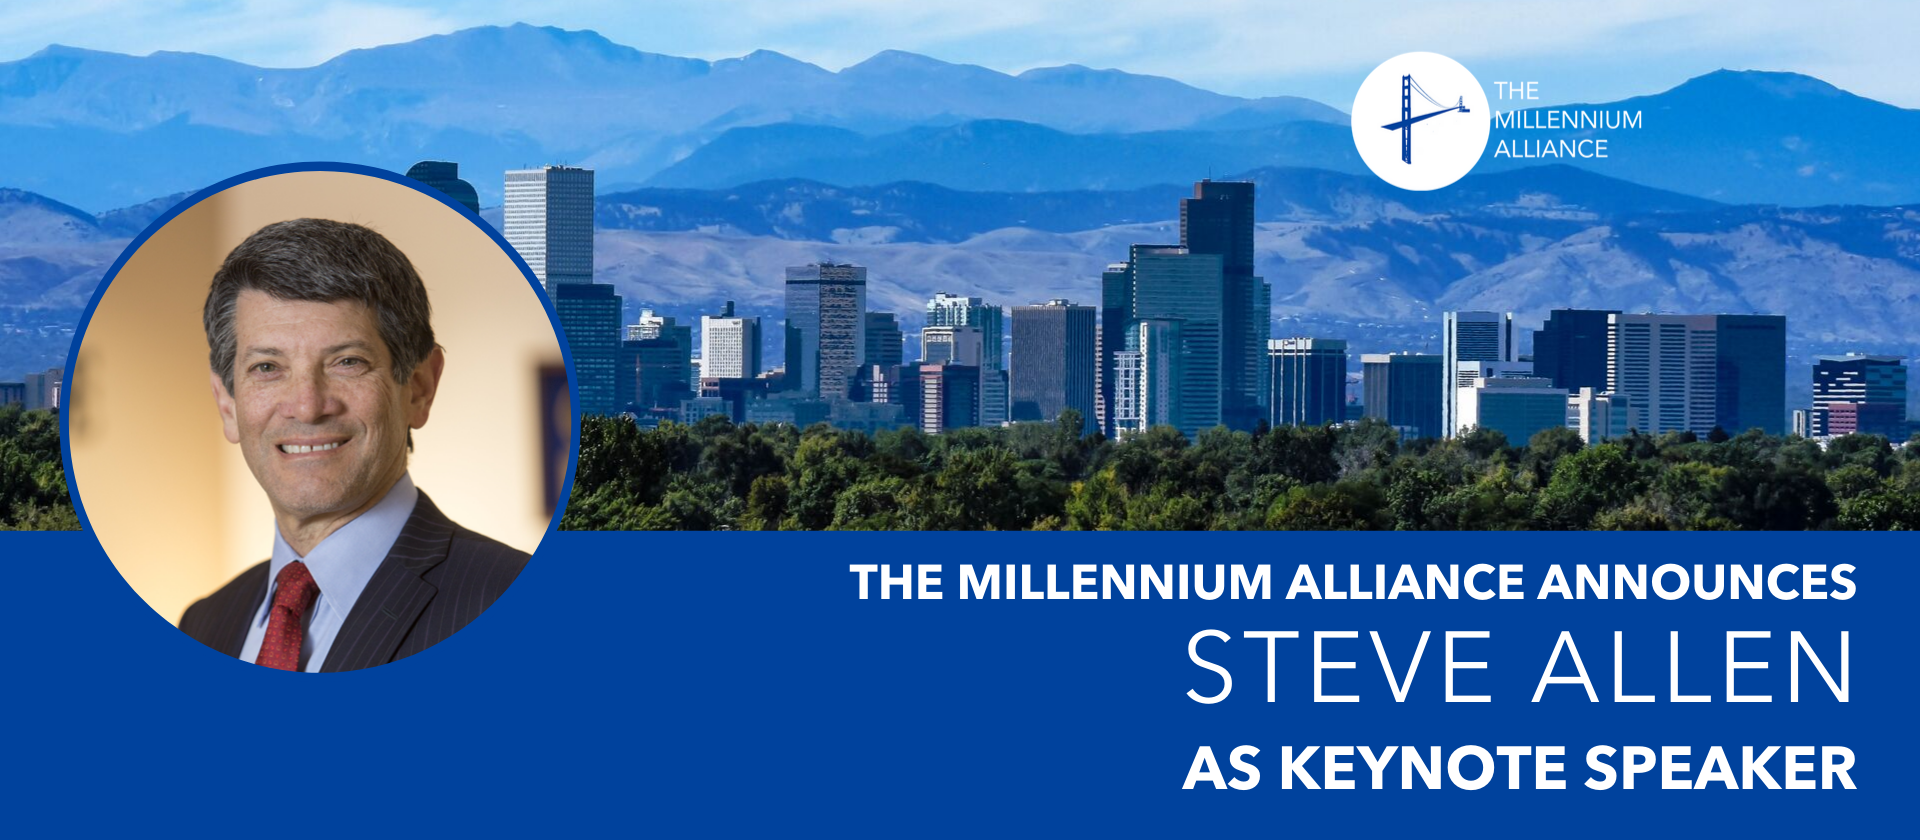 Steve Allen Millennium Alliance Keynote Speaker Announcement